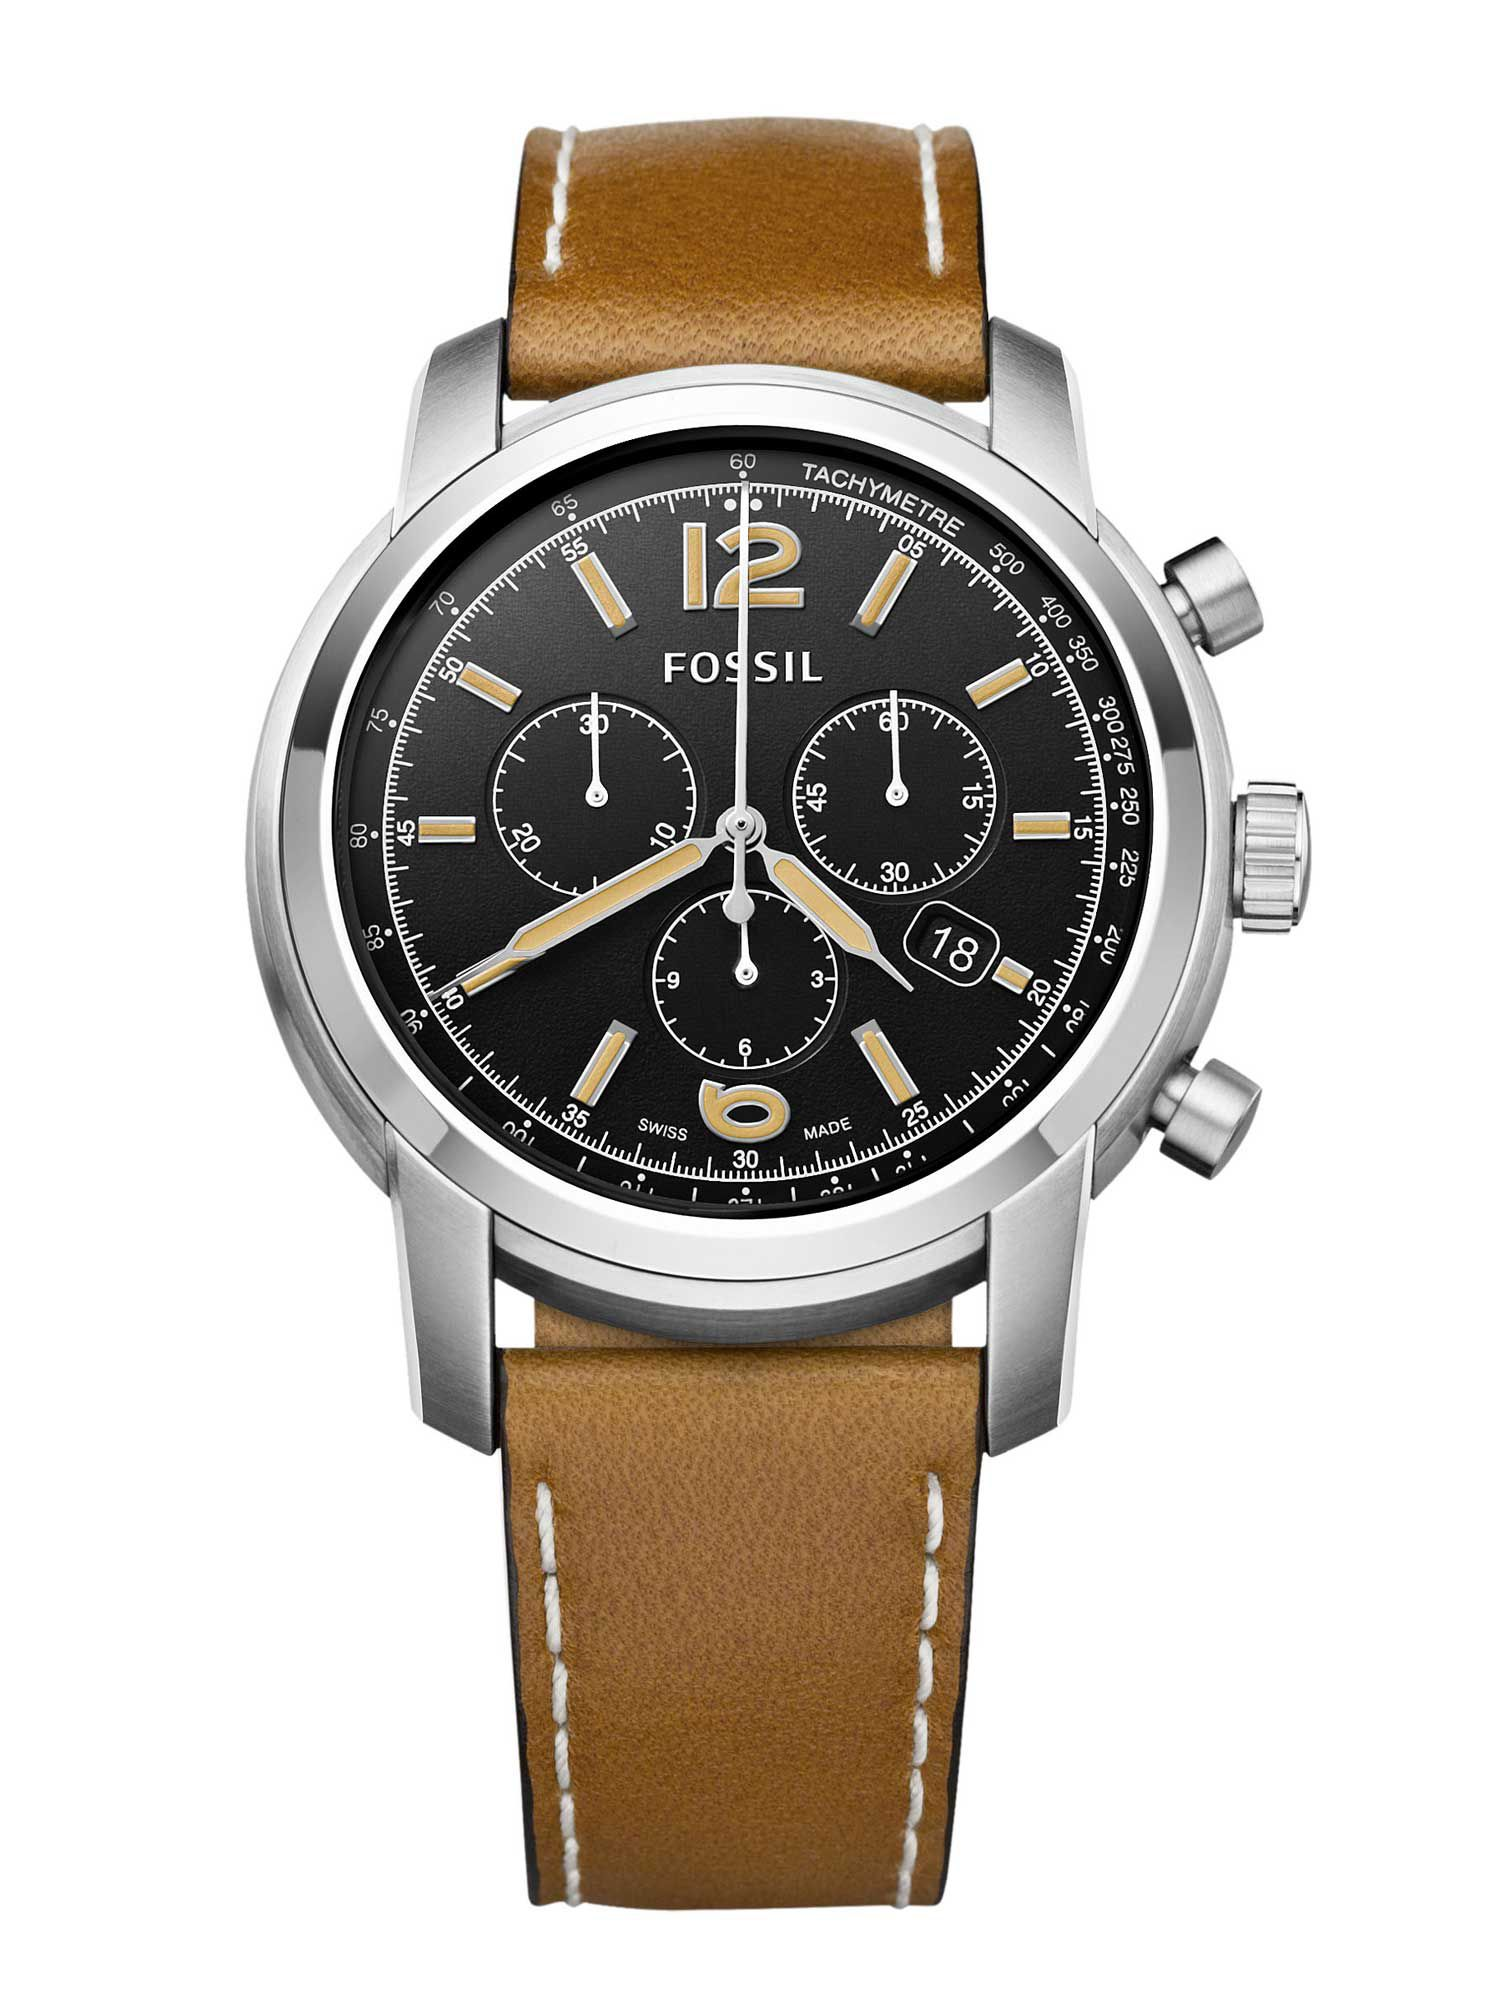 FSW7005 Chronograph tan leather mens watch